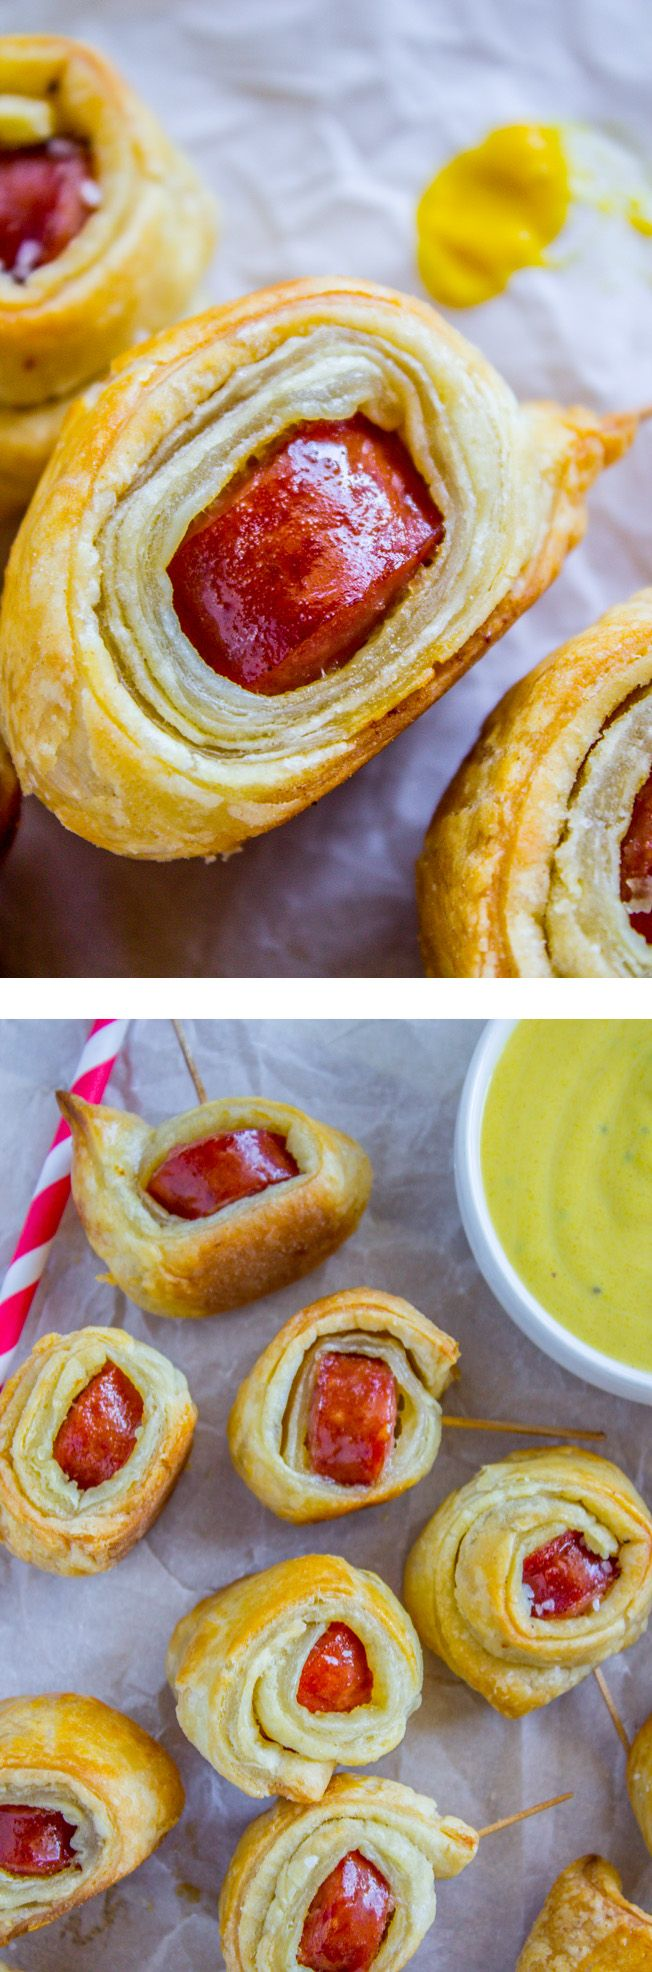 2-Ingredient Kielbasa Puffs from The Food Charlatan. These little bites of Kielbasa are wrapped up in flaky puff pastry for the perfect game day appetizer! Dip them in mustard and enjoy a little more sophisticated pigs-in-a-blanket! It goes without saying that kids and adults alike love these!